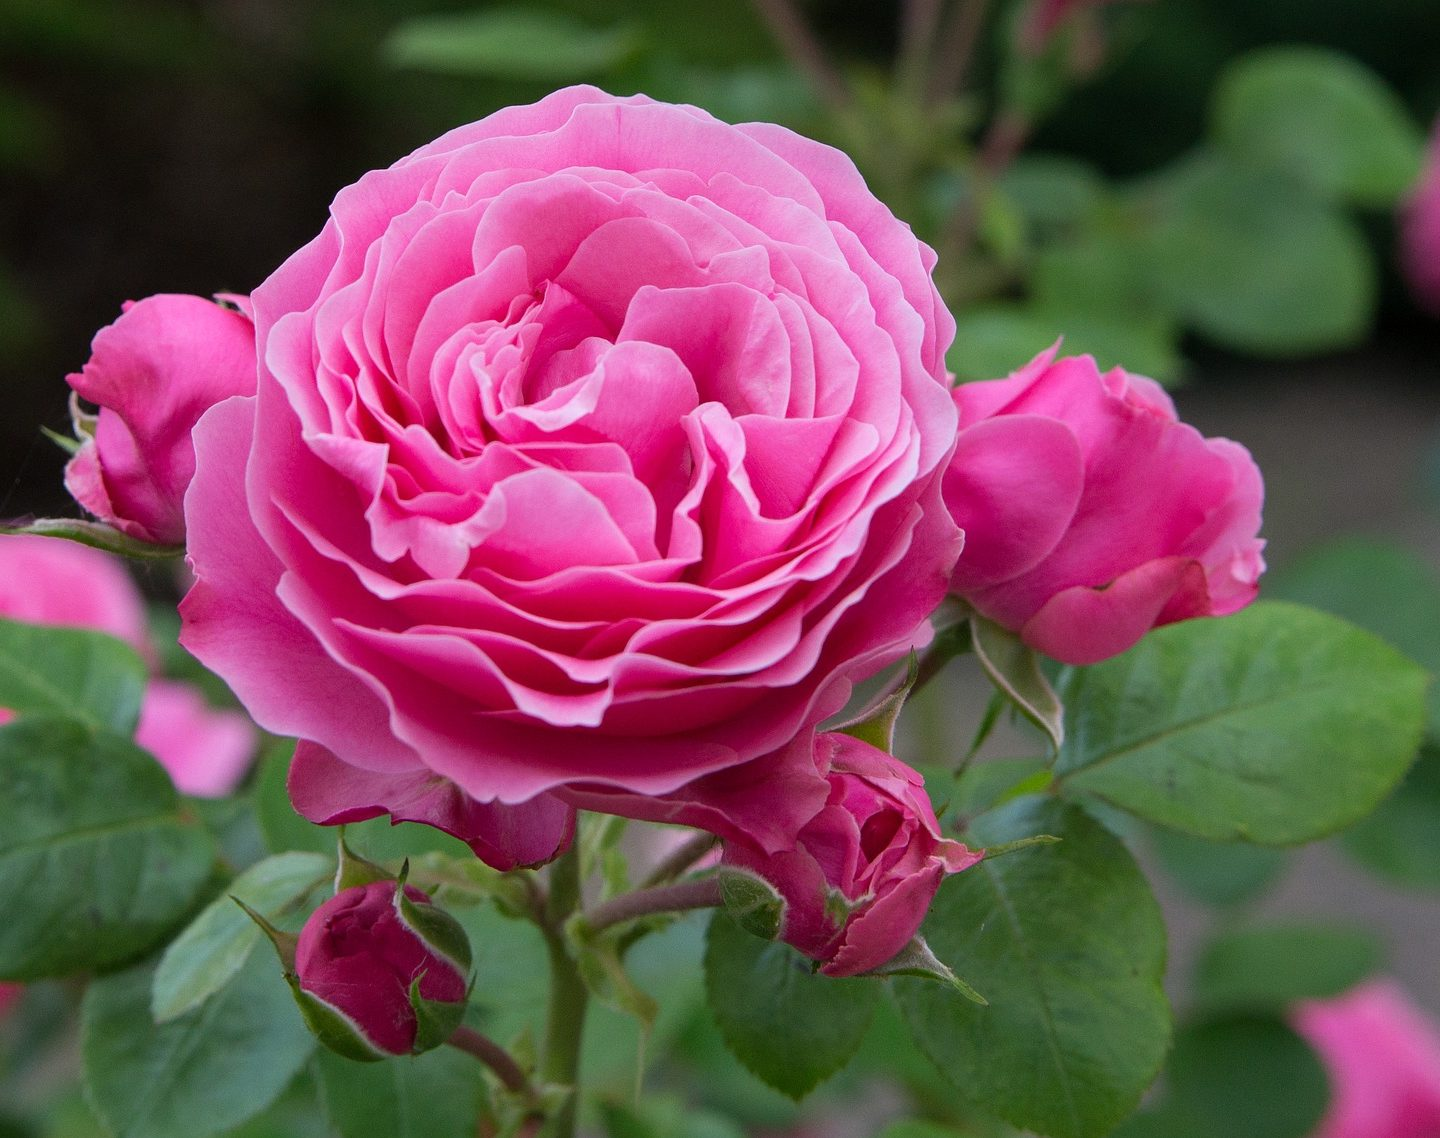 The sequenced genome of roses creates new opportunities for scientists to develop new cultivars of ornamental and oil-bearing roses